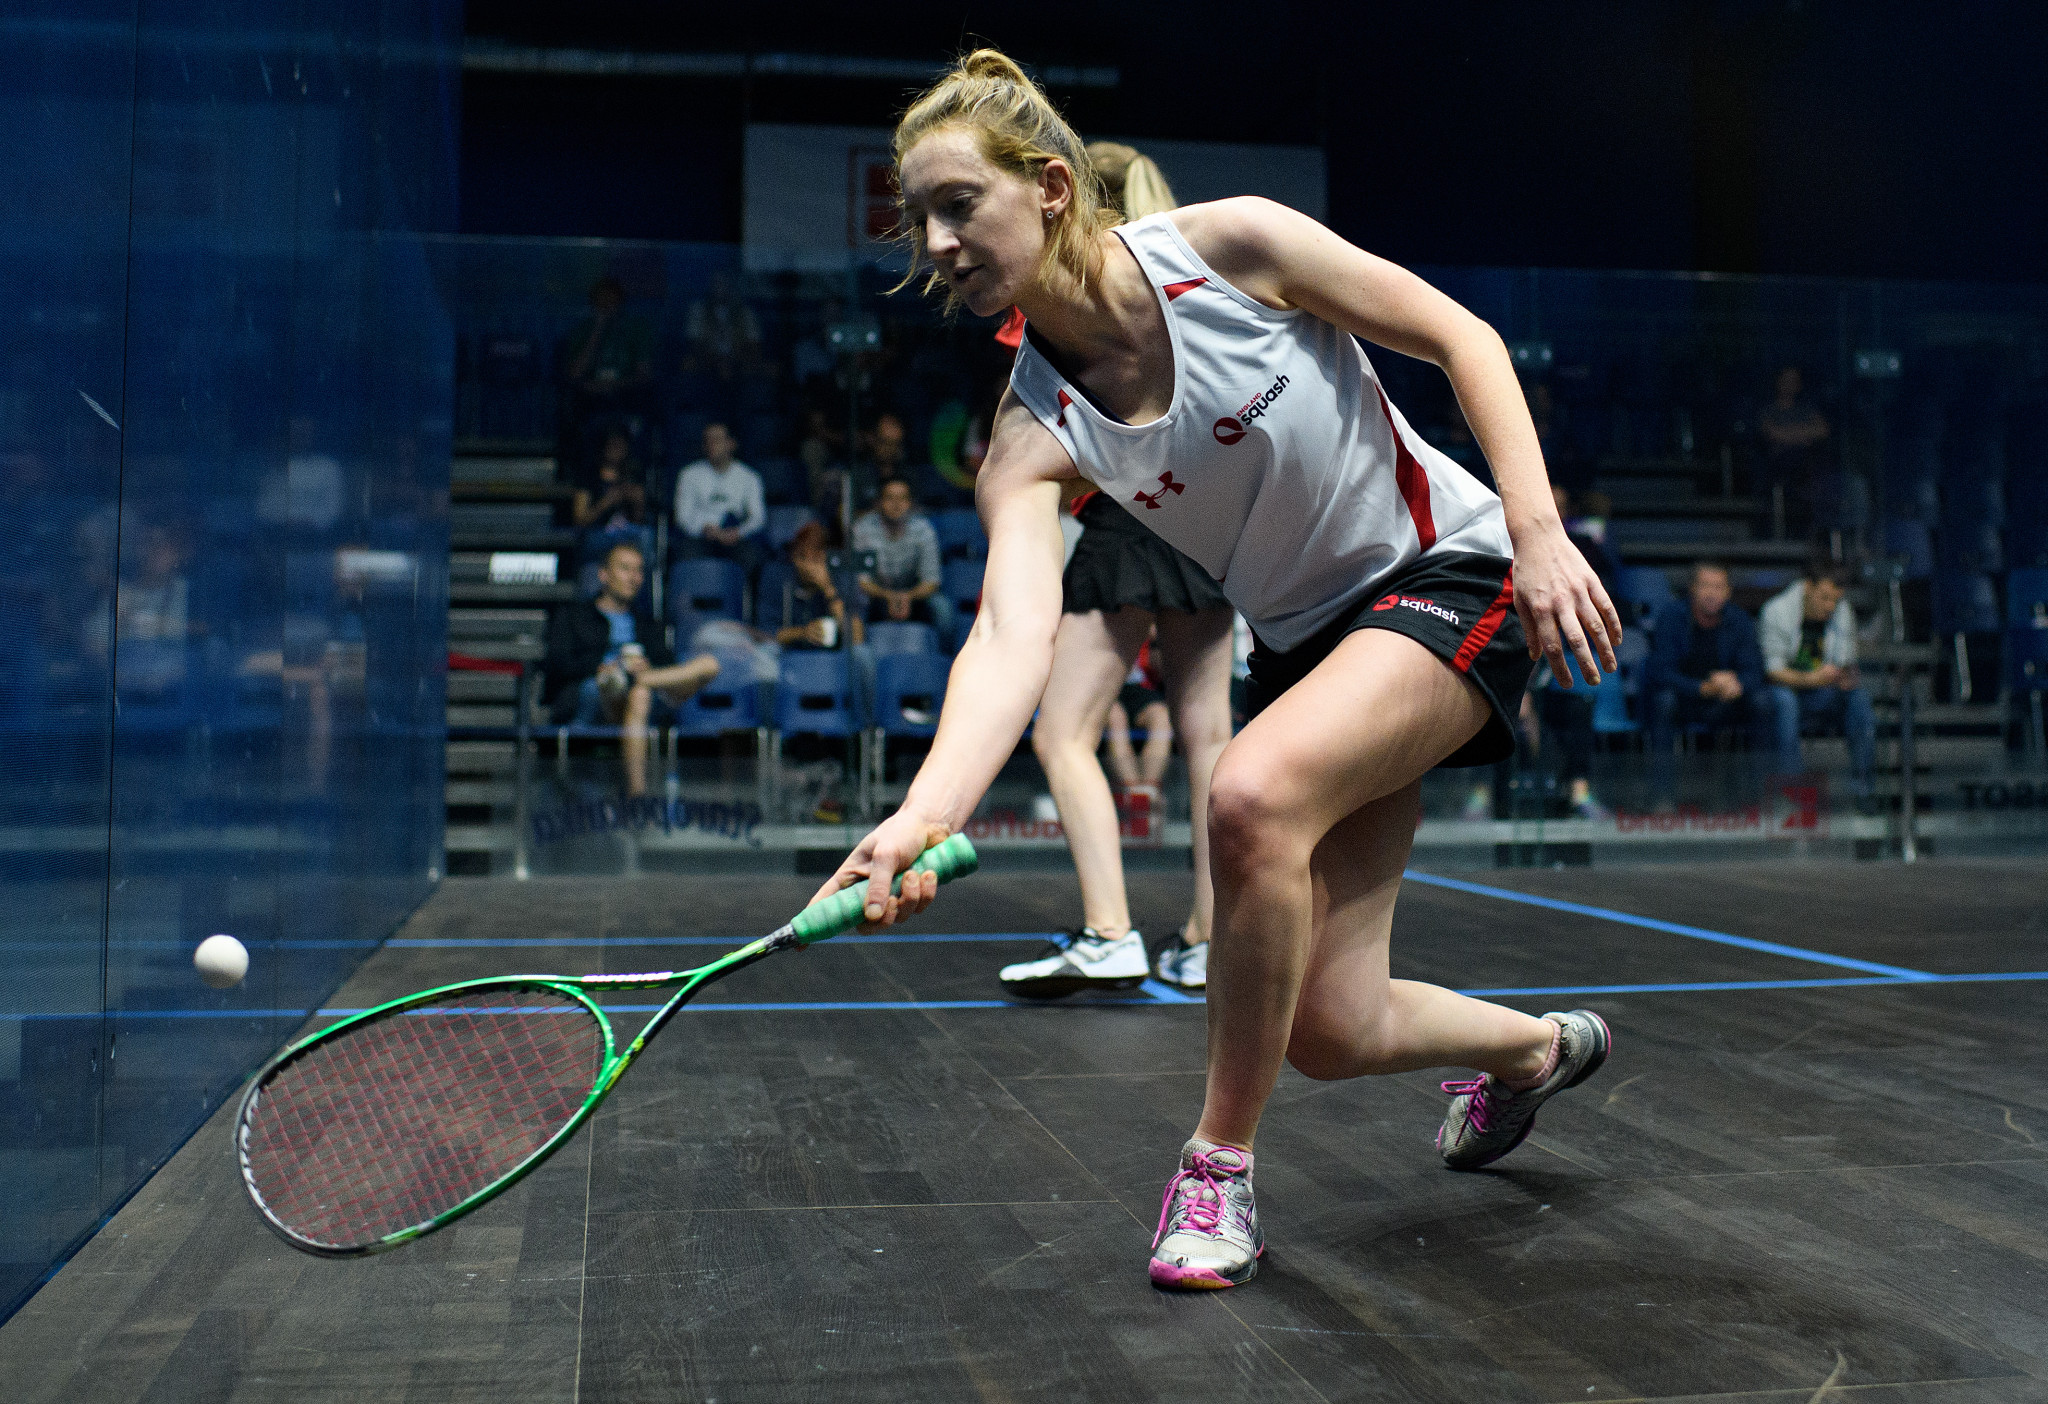 Tomlinson breaks into women's top 20 for first time in PSA rankings